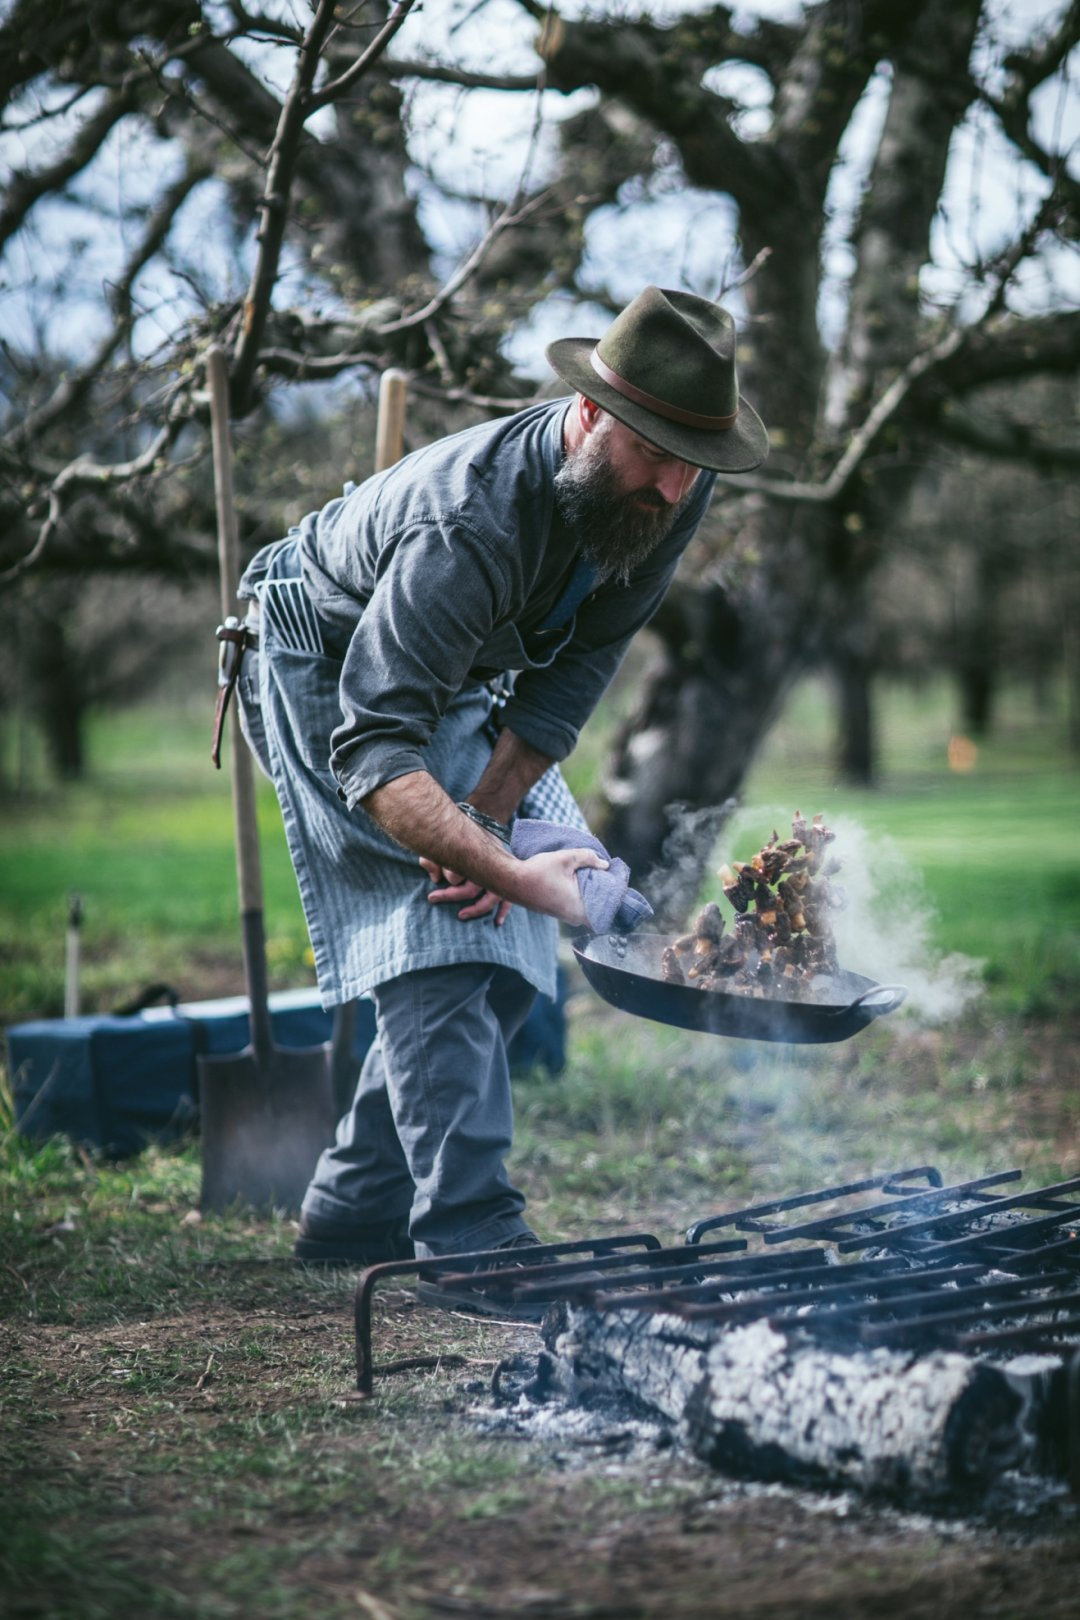 Man flipping food in a skillet over grill in ground